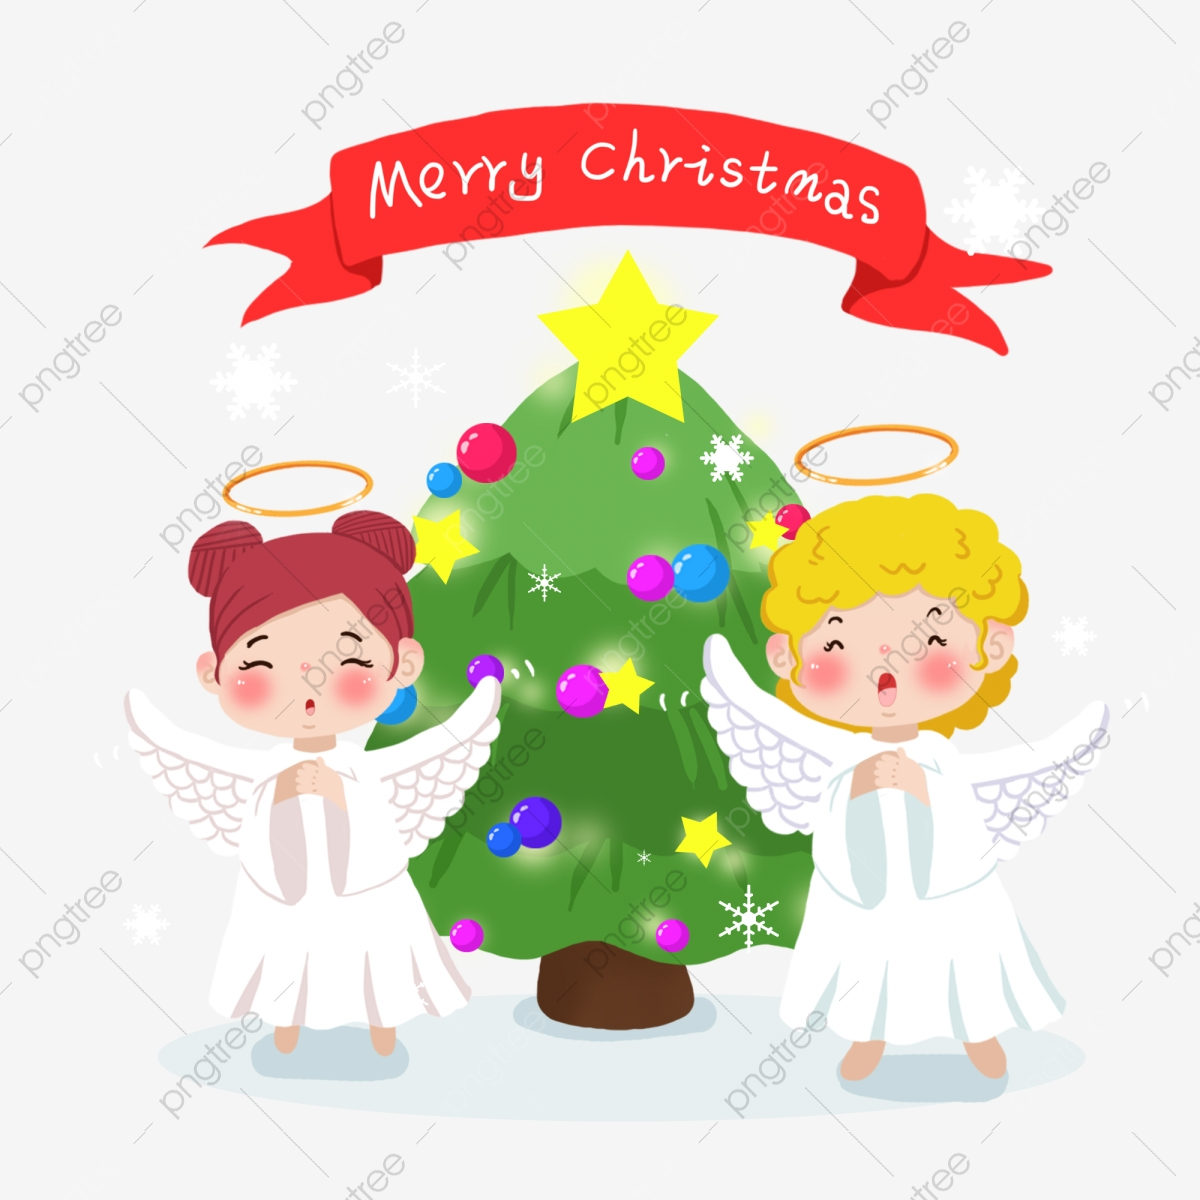 Acura Christmas Commercial 2021 Hand Drawn Christmas Angel Acura Angel Christmas Tree Christmas Lantern Merry Christmas White Angel Christmas Png Transparent Clipart Image And Psd File For Free Download